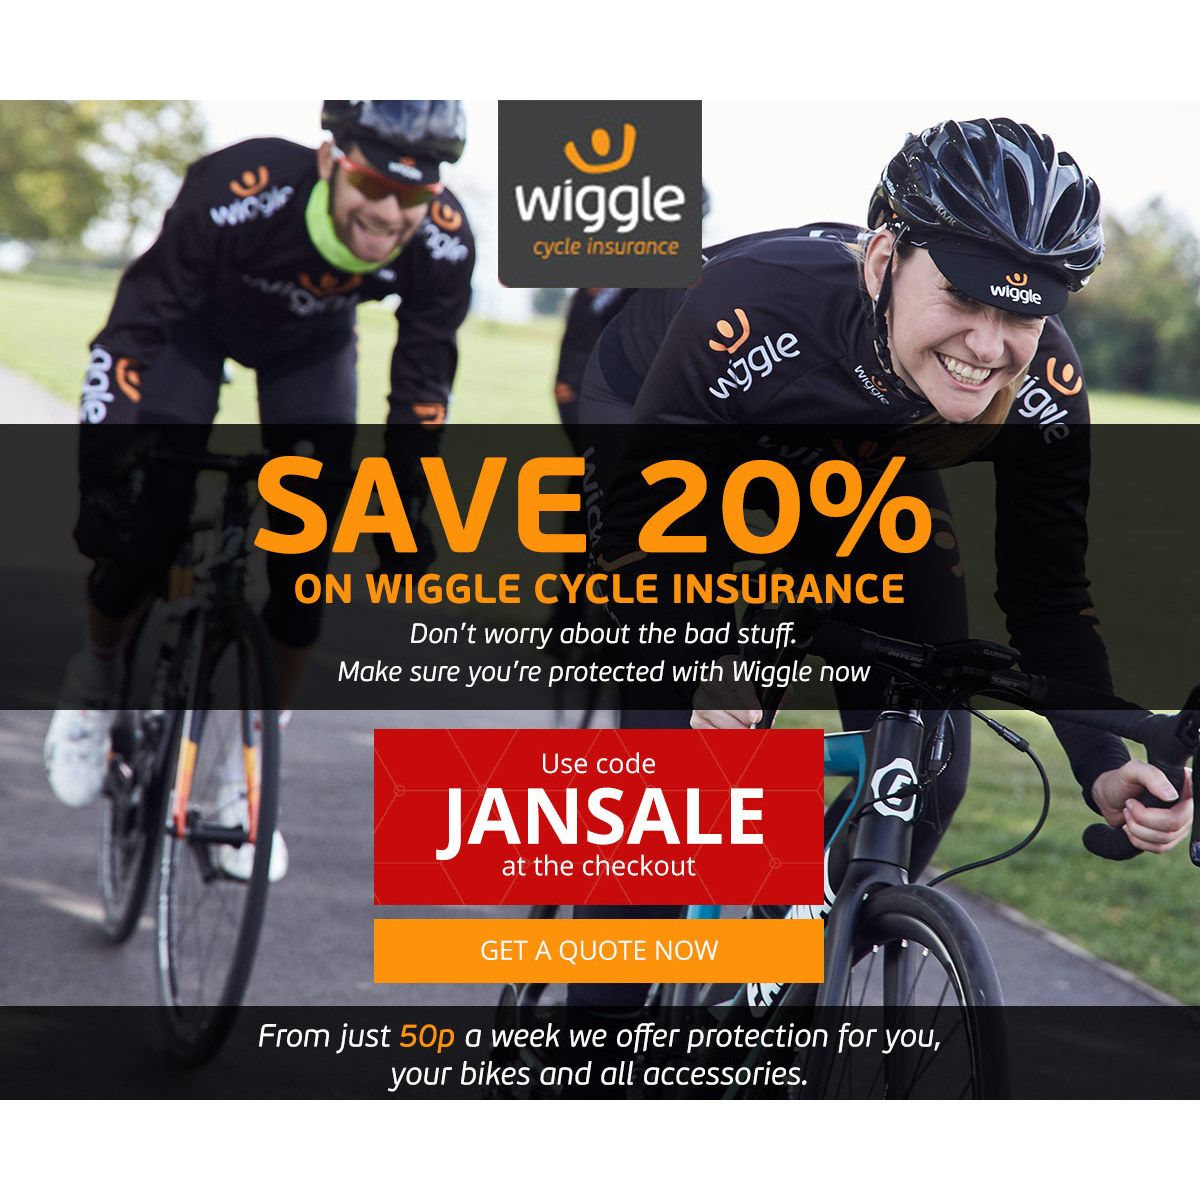 Cover your new Bike - with Bicycle Insurance from Wiggle  CyclingBargains   Bike  BikeBargains bf592a853